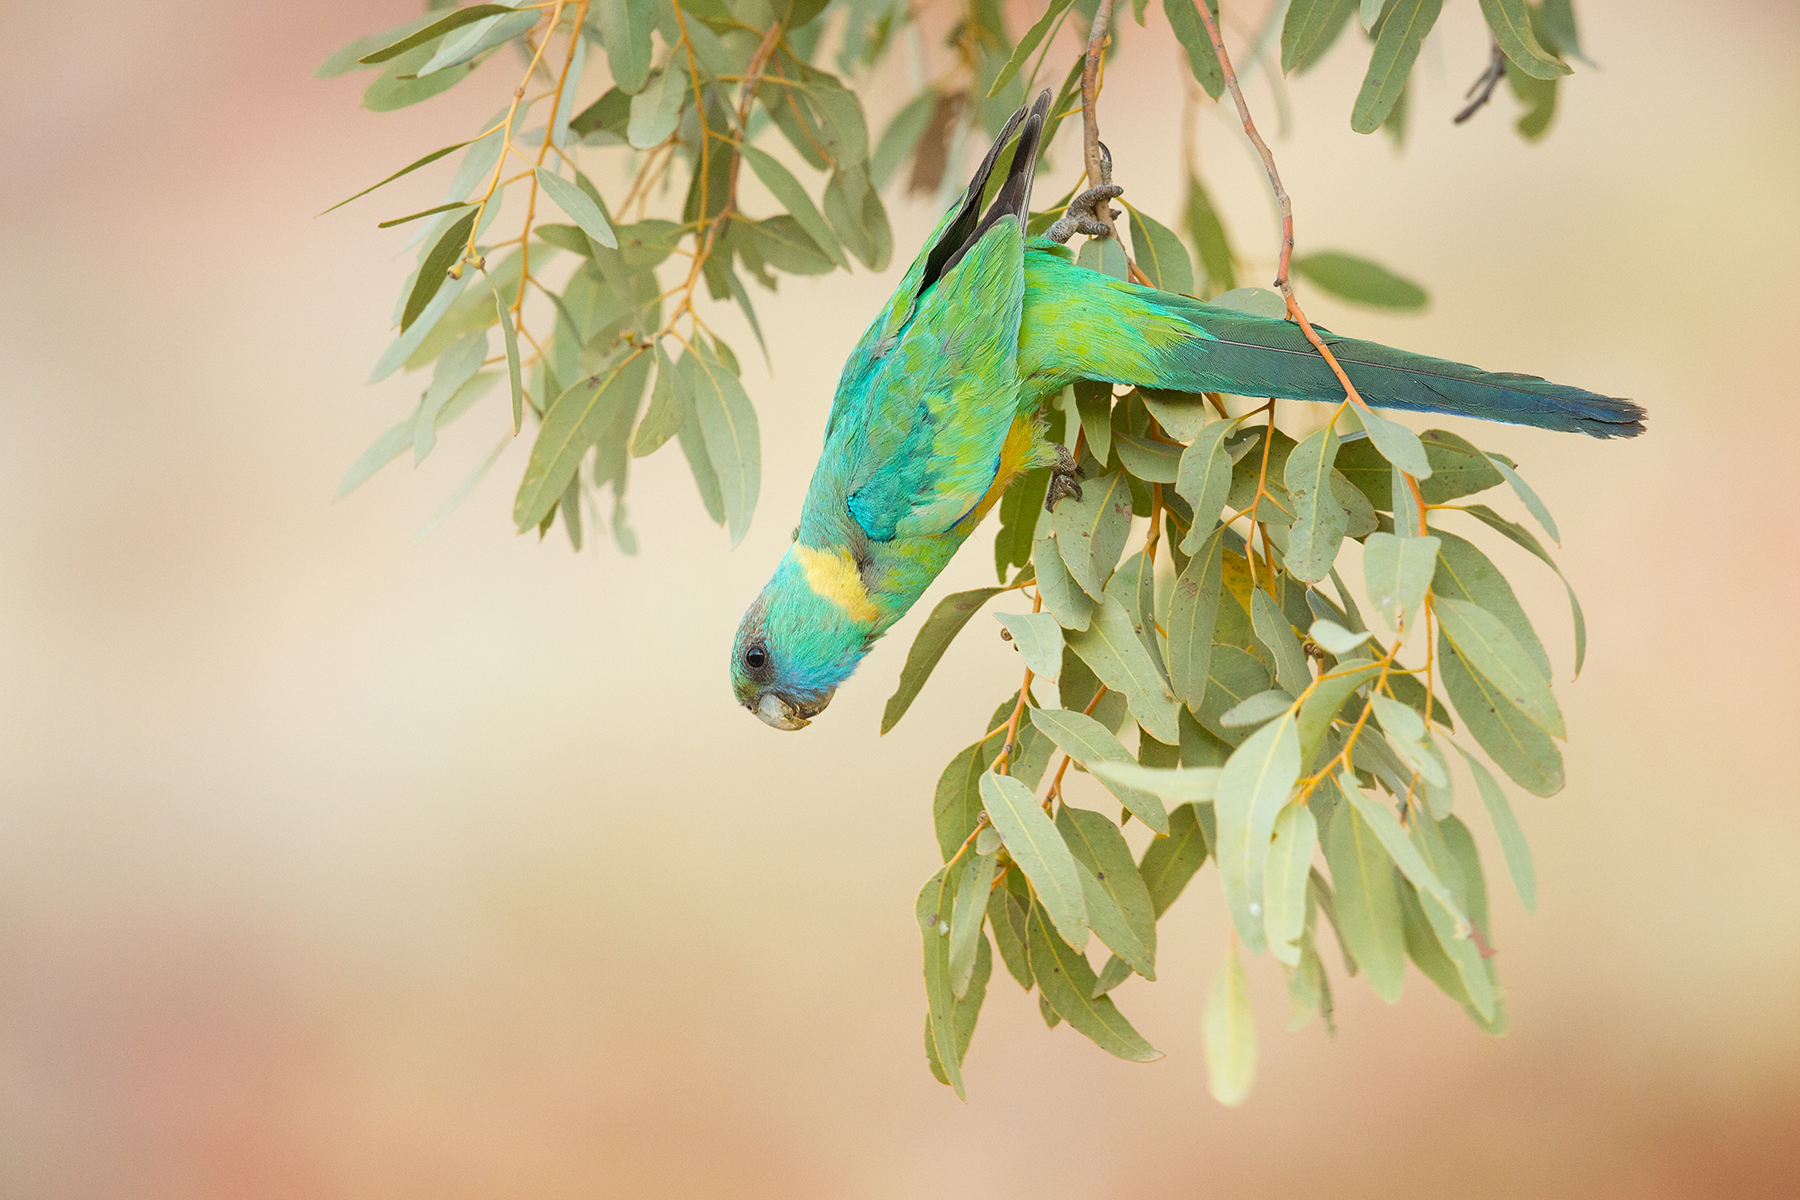 Cloncurry Ringneck by Daniel Venema